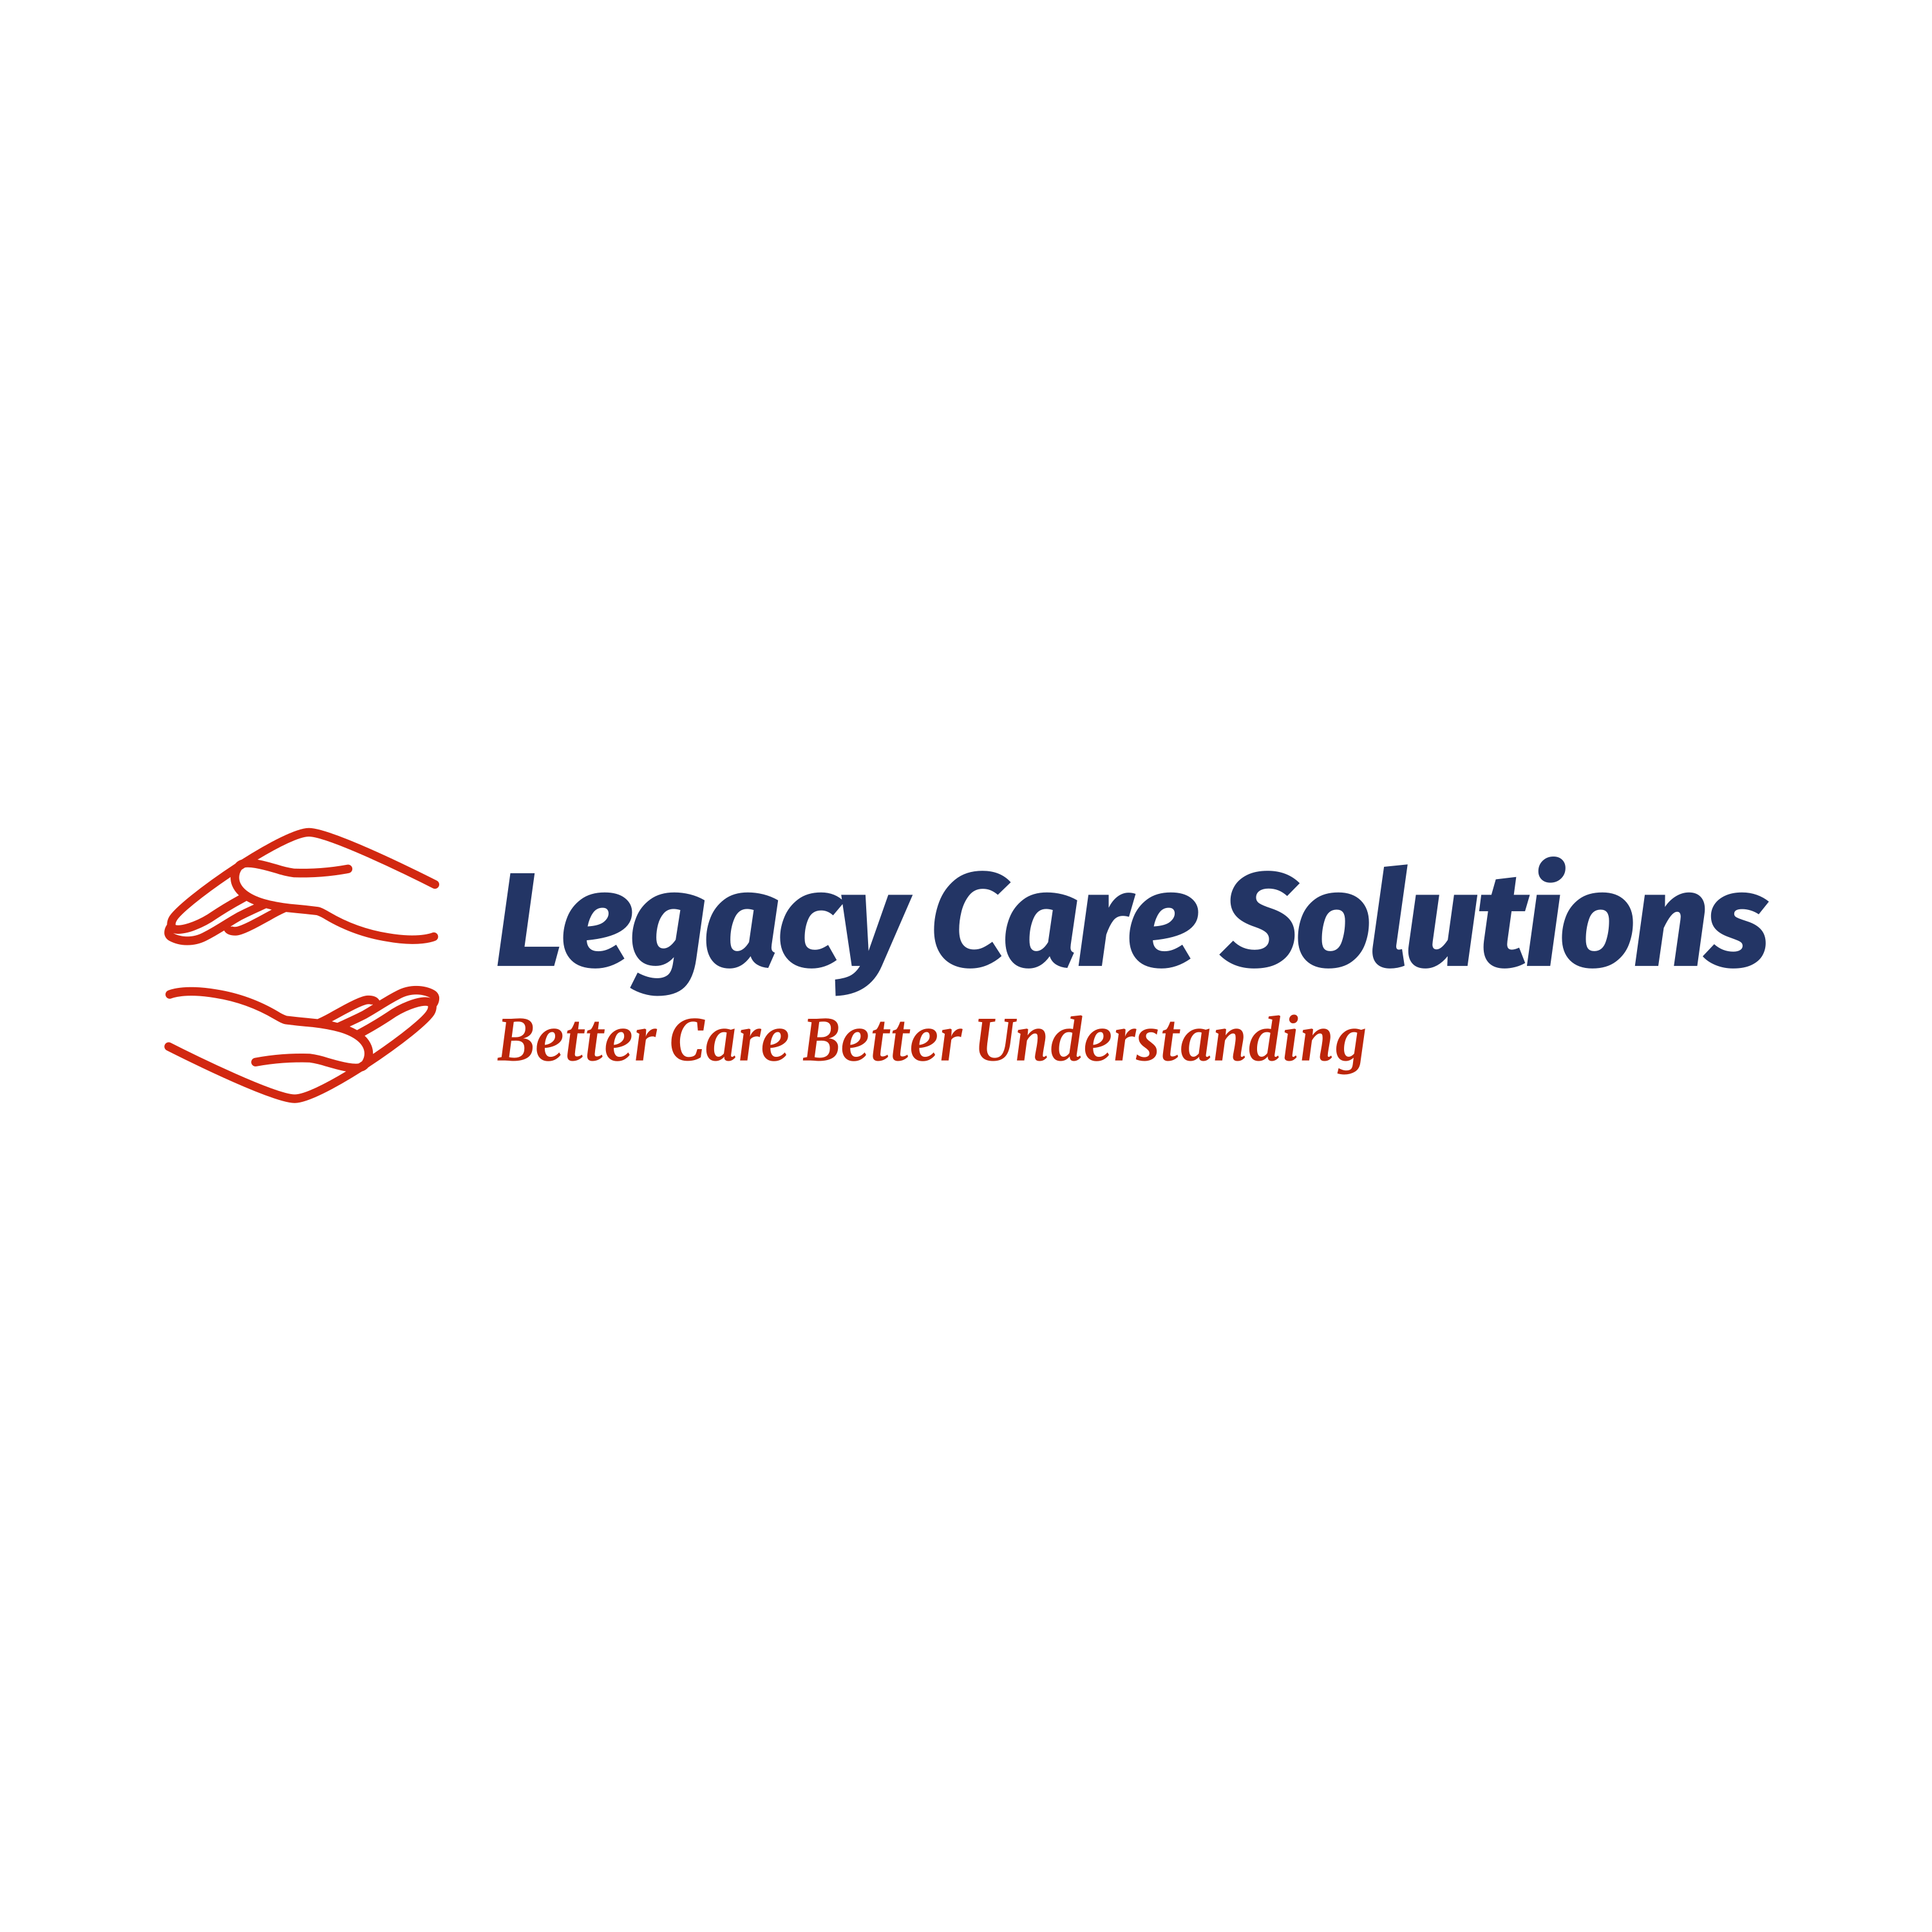 Legacy Care Solutions